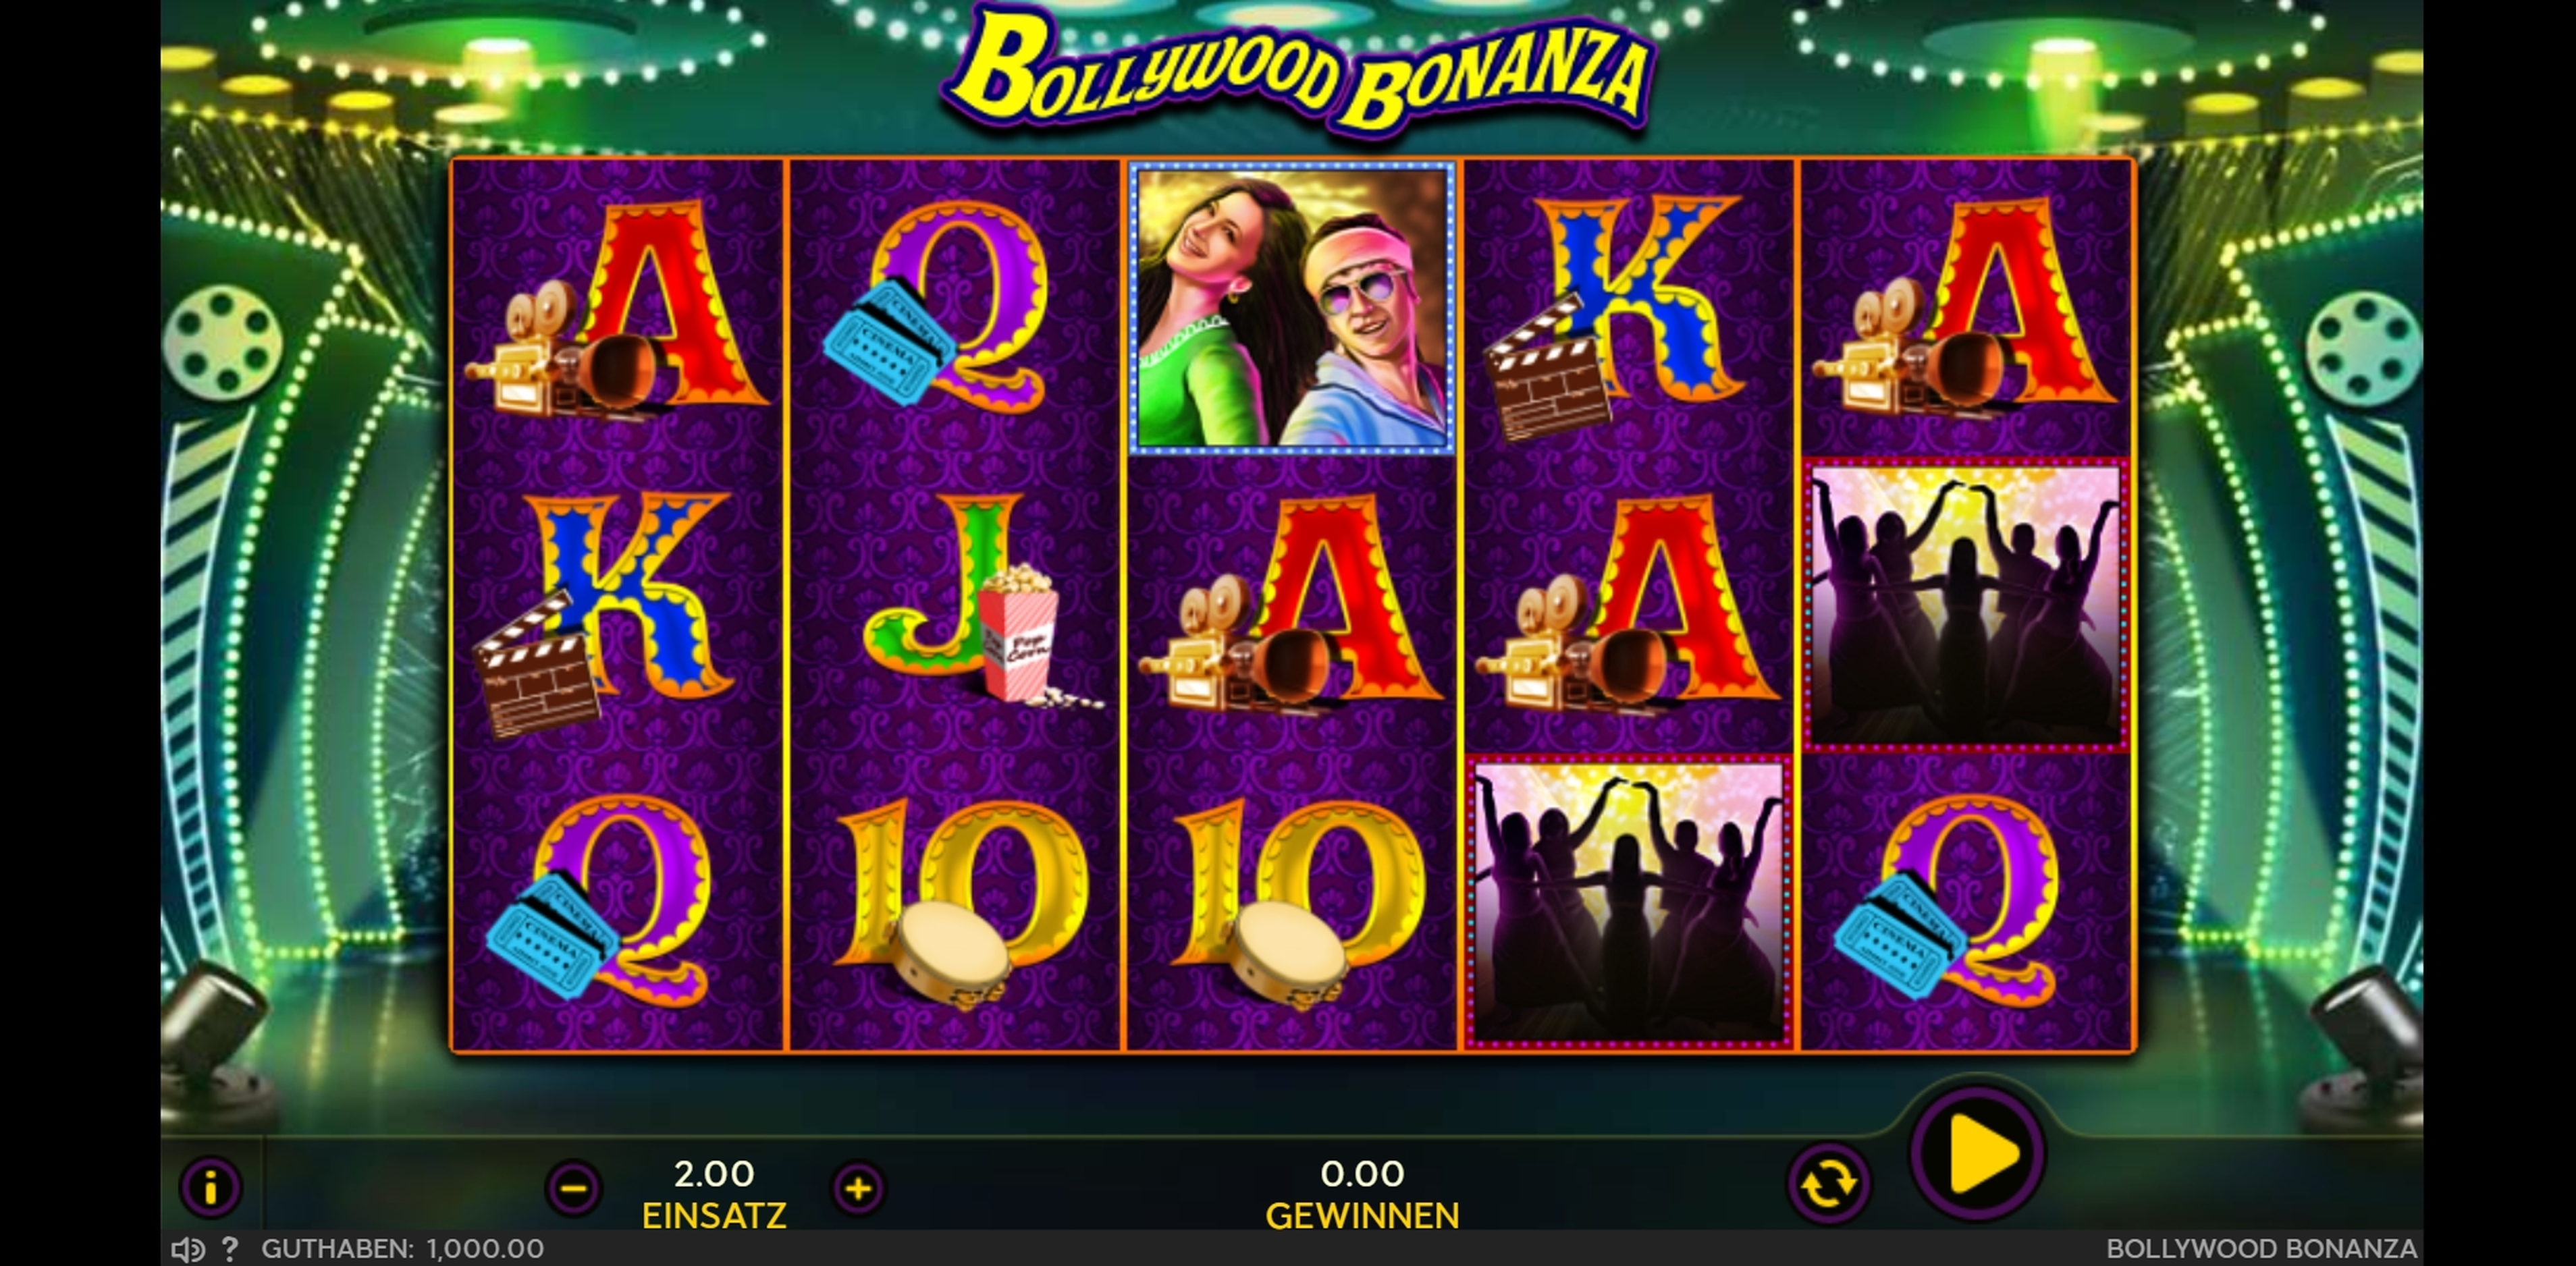 Reels in Bollywood Bonanza Slot Game by 888 Gaming